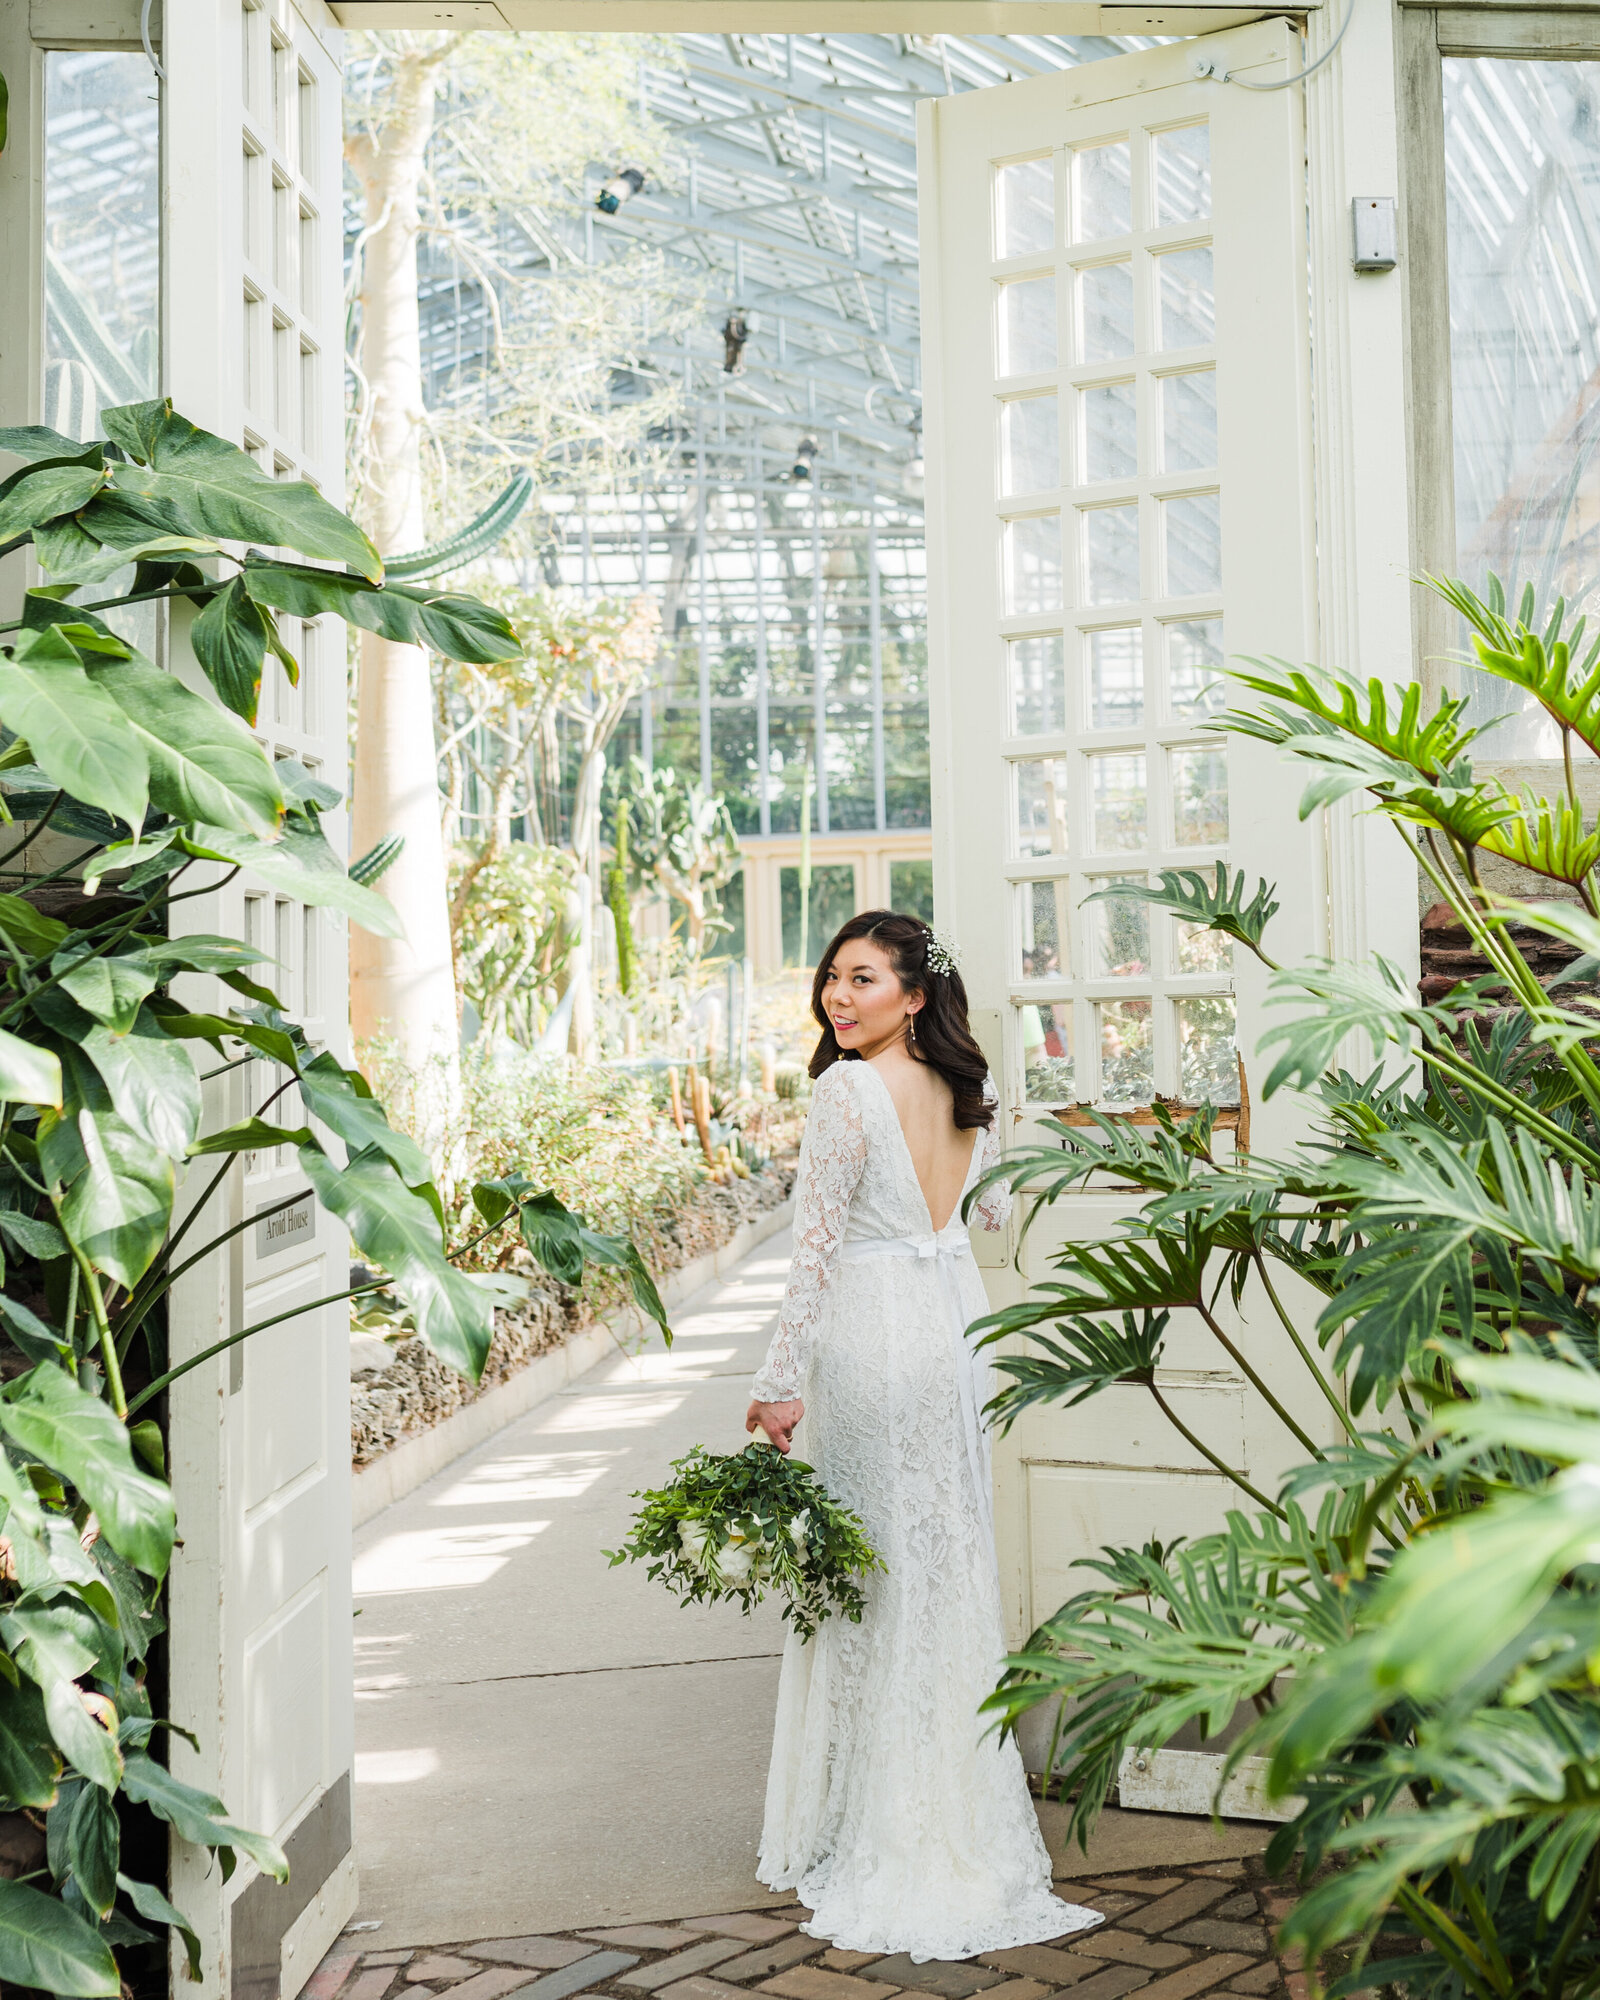 Garfield Park Conservatory Wedding _ Susie and Joe_032